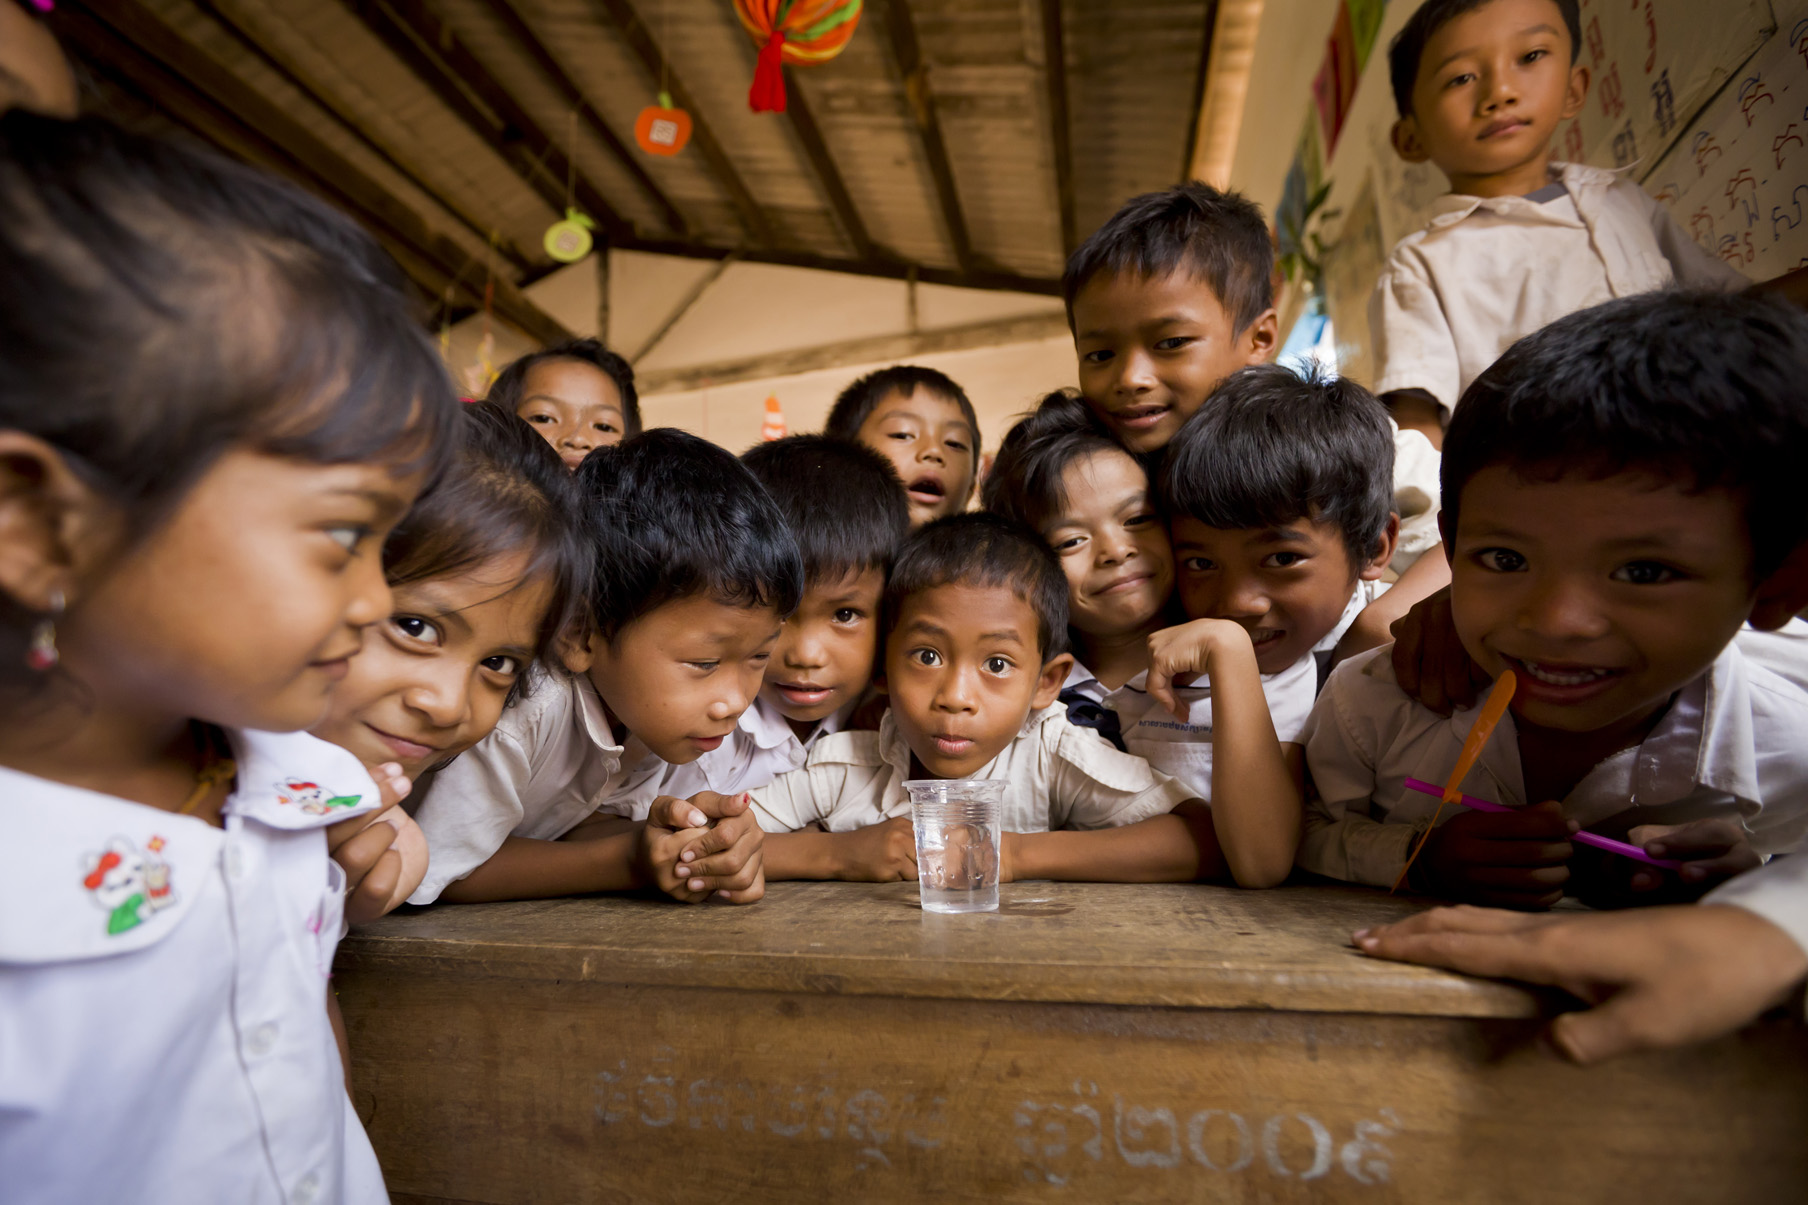 We believe that every child has a right to clean water, and that we would never serve a child a glass of water we would not serve our own children. Wouldn